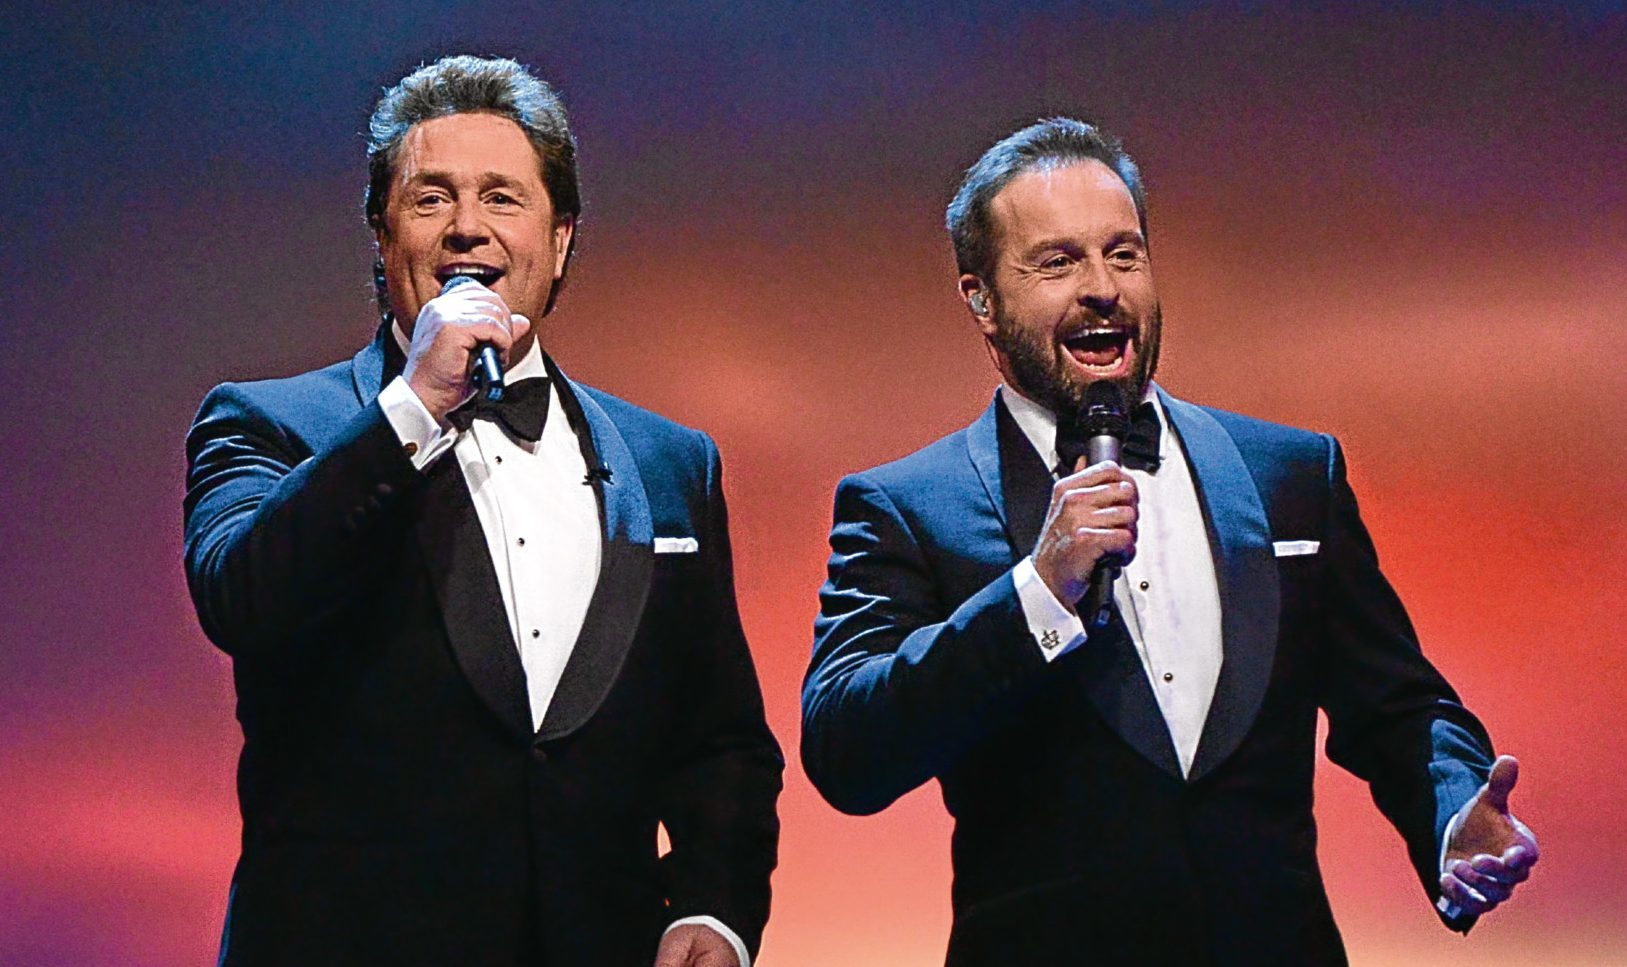 Michael Ball and Alfie Boe (ITV)